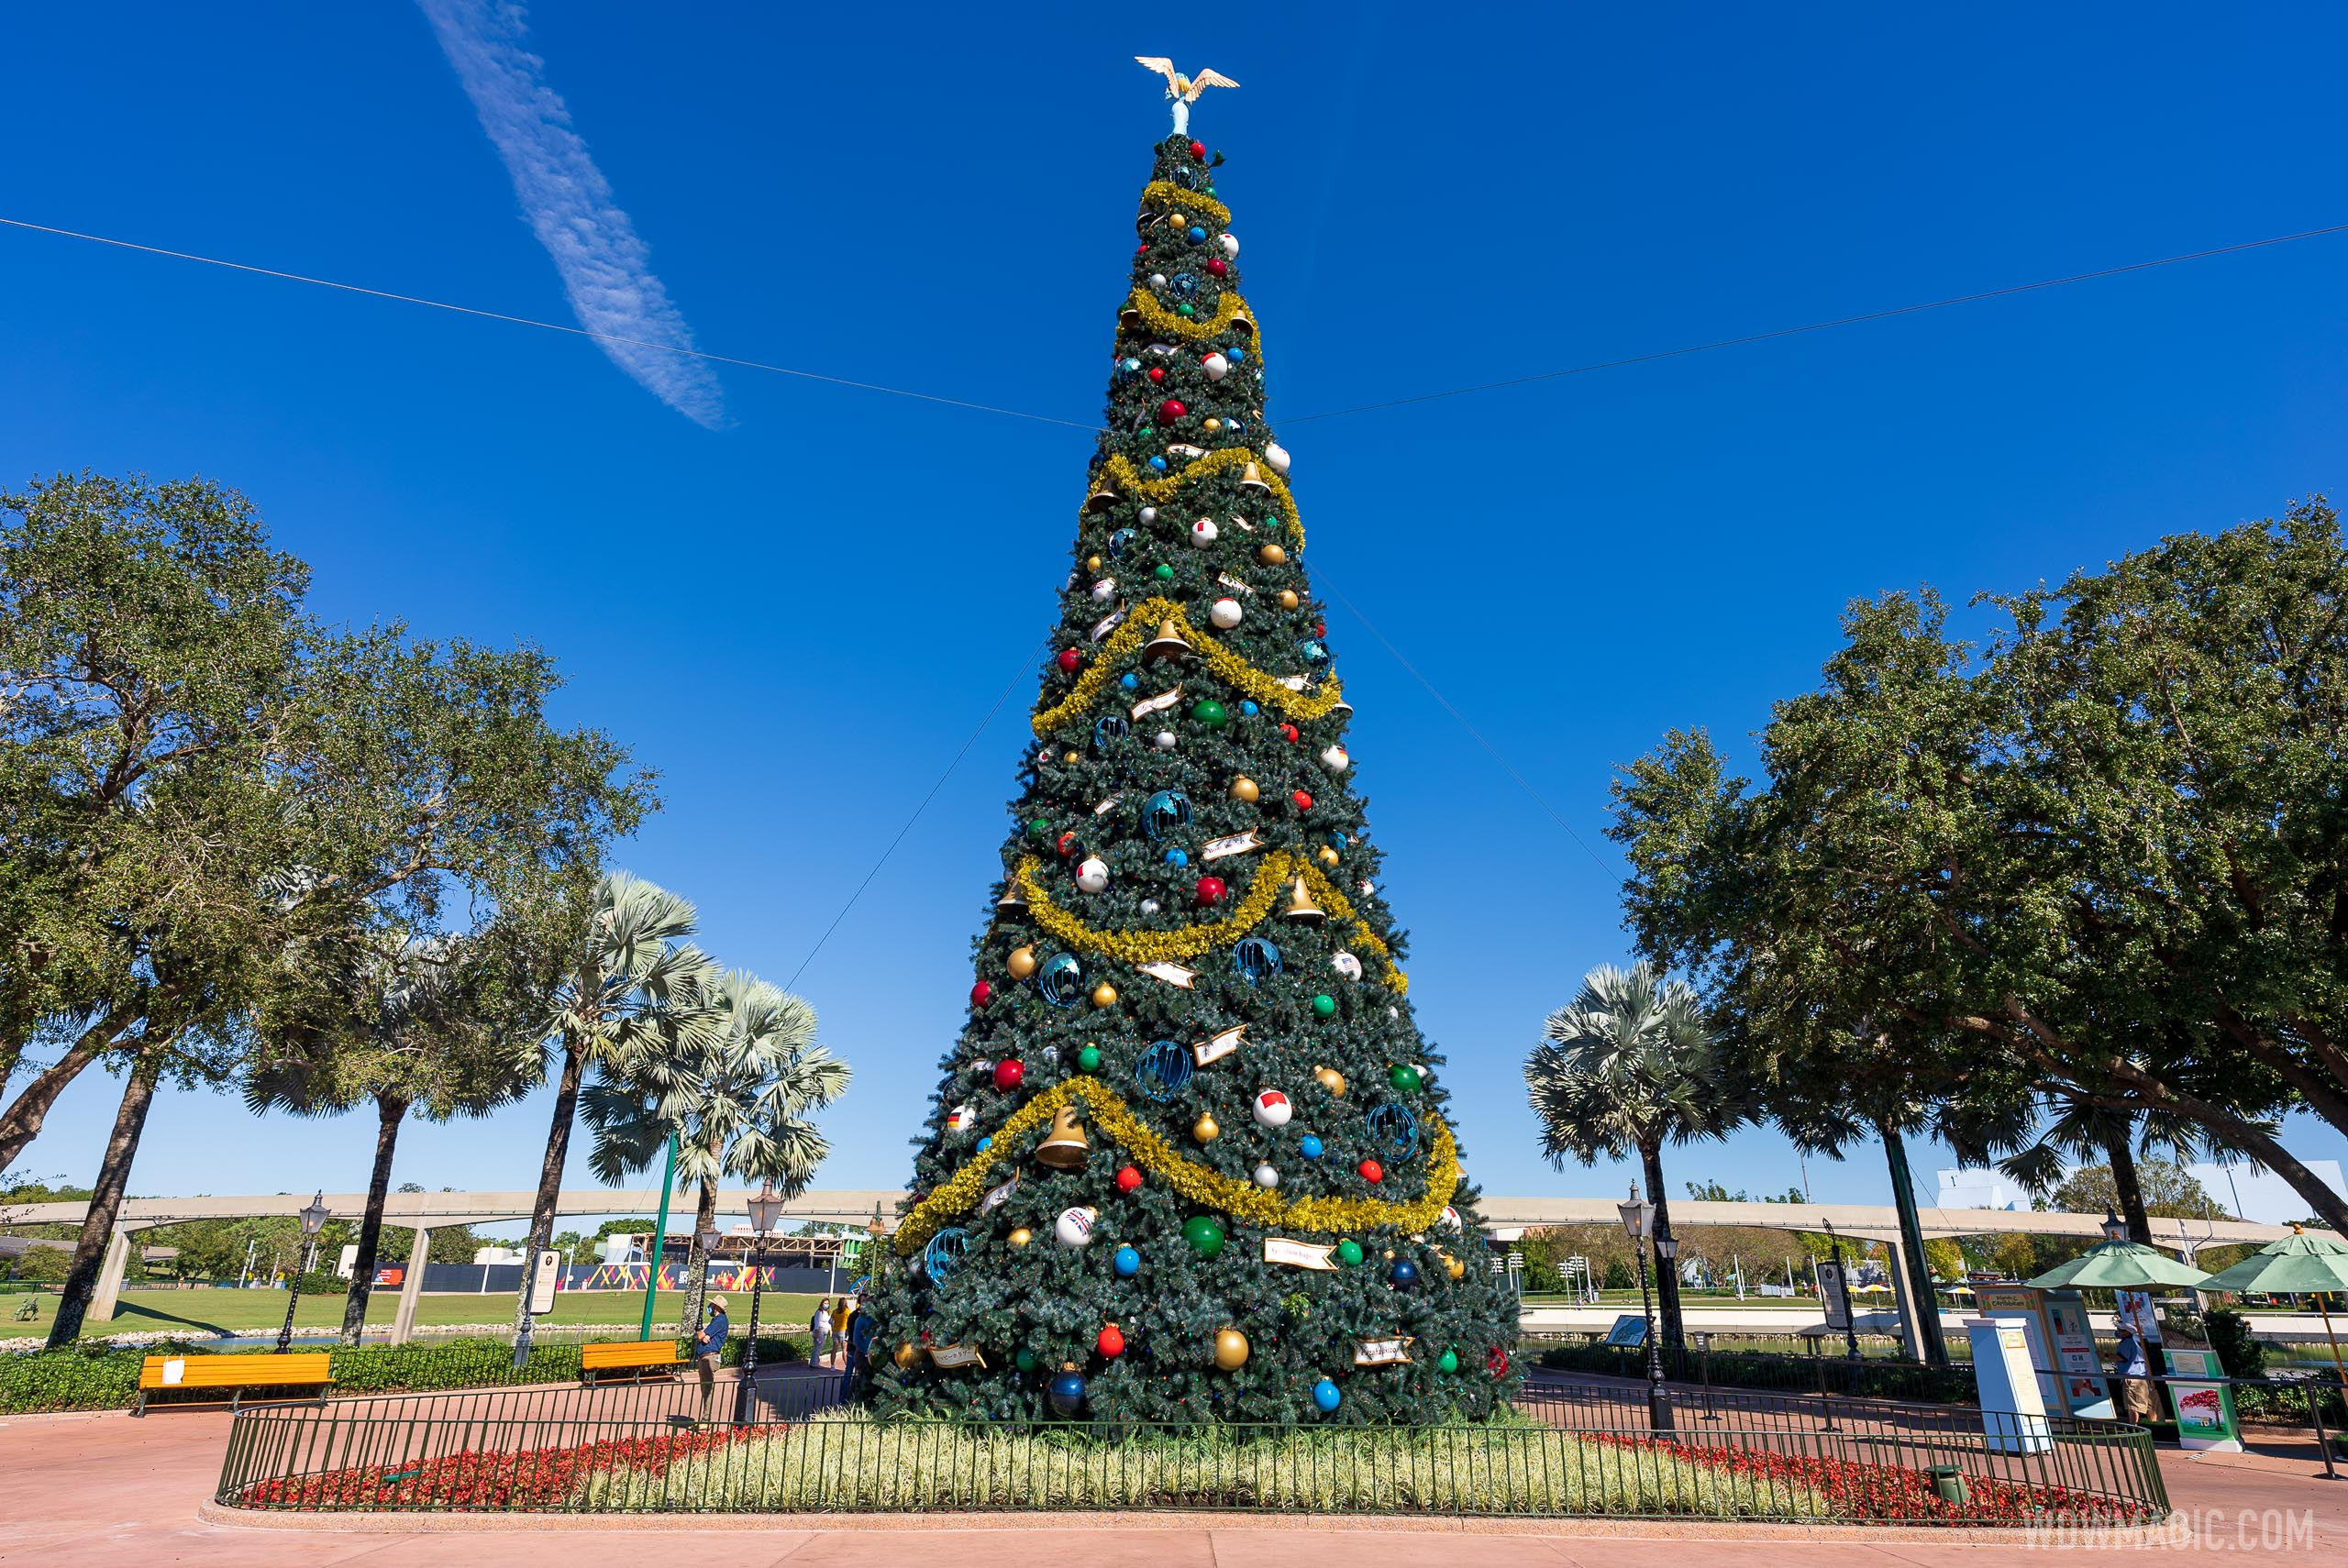 PHOTOS - Holiday decor now on display at EPCOT